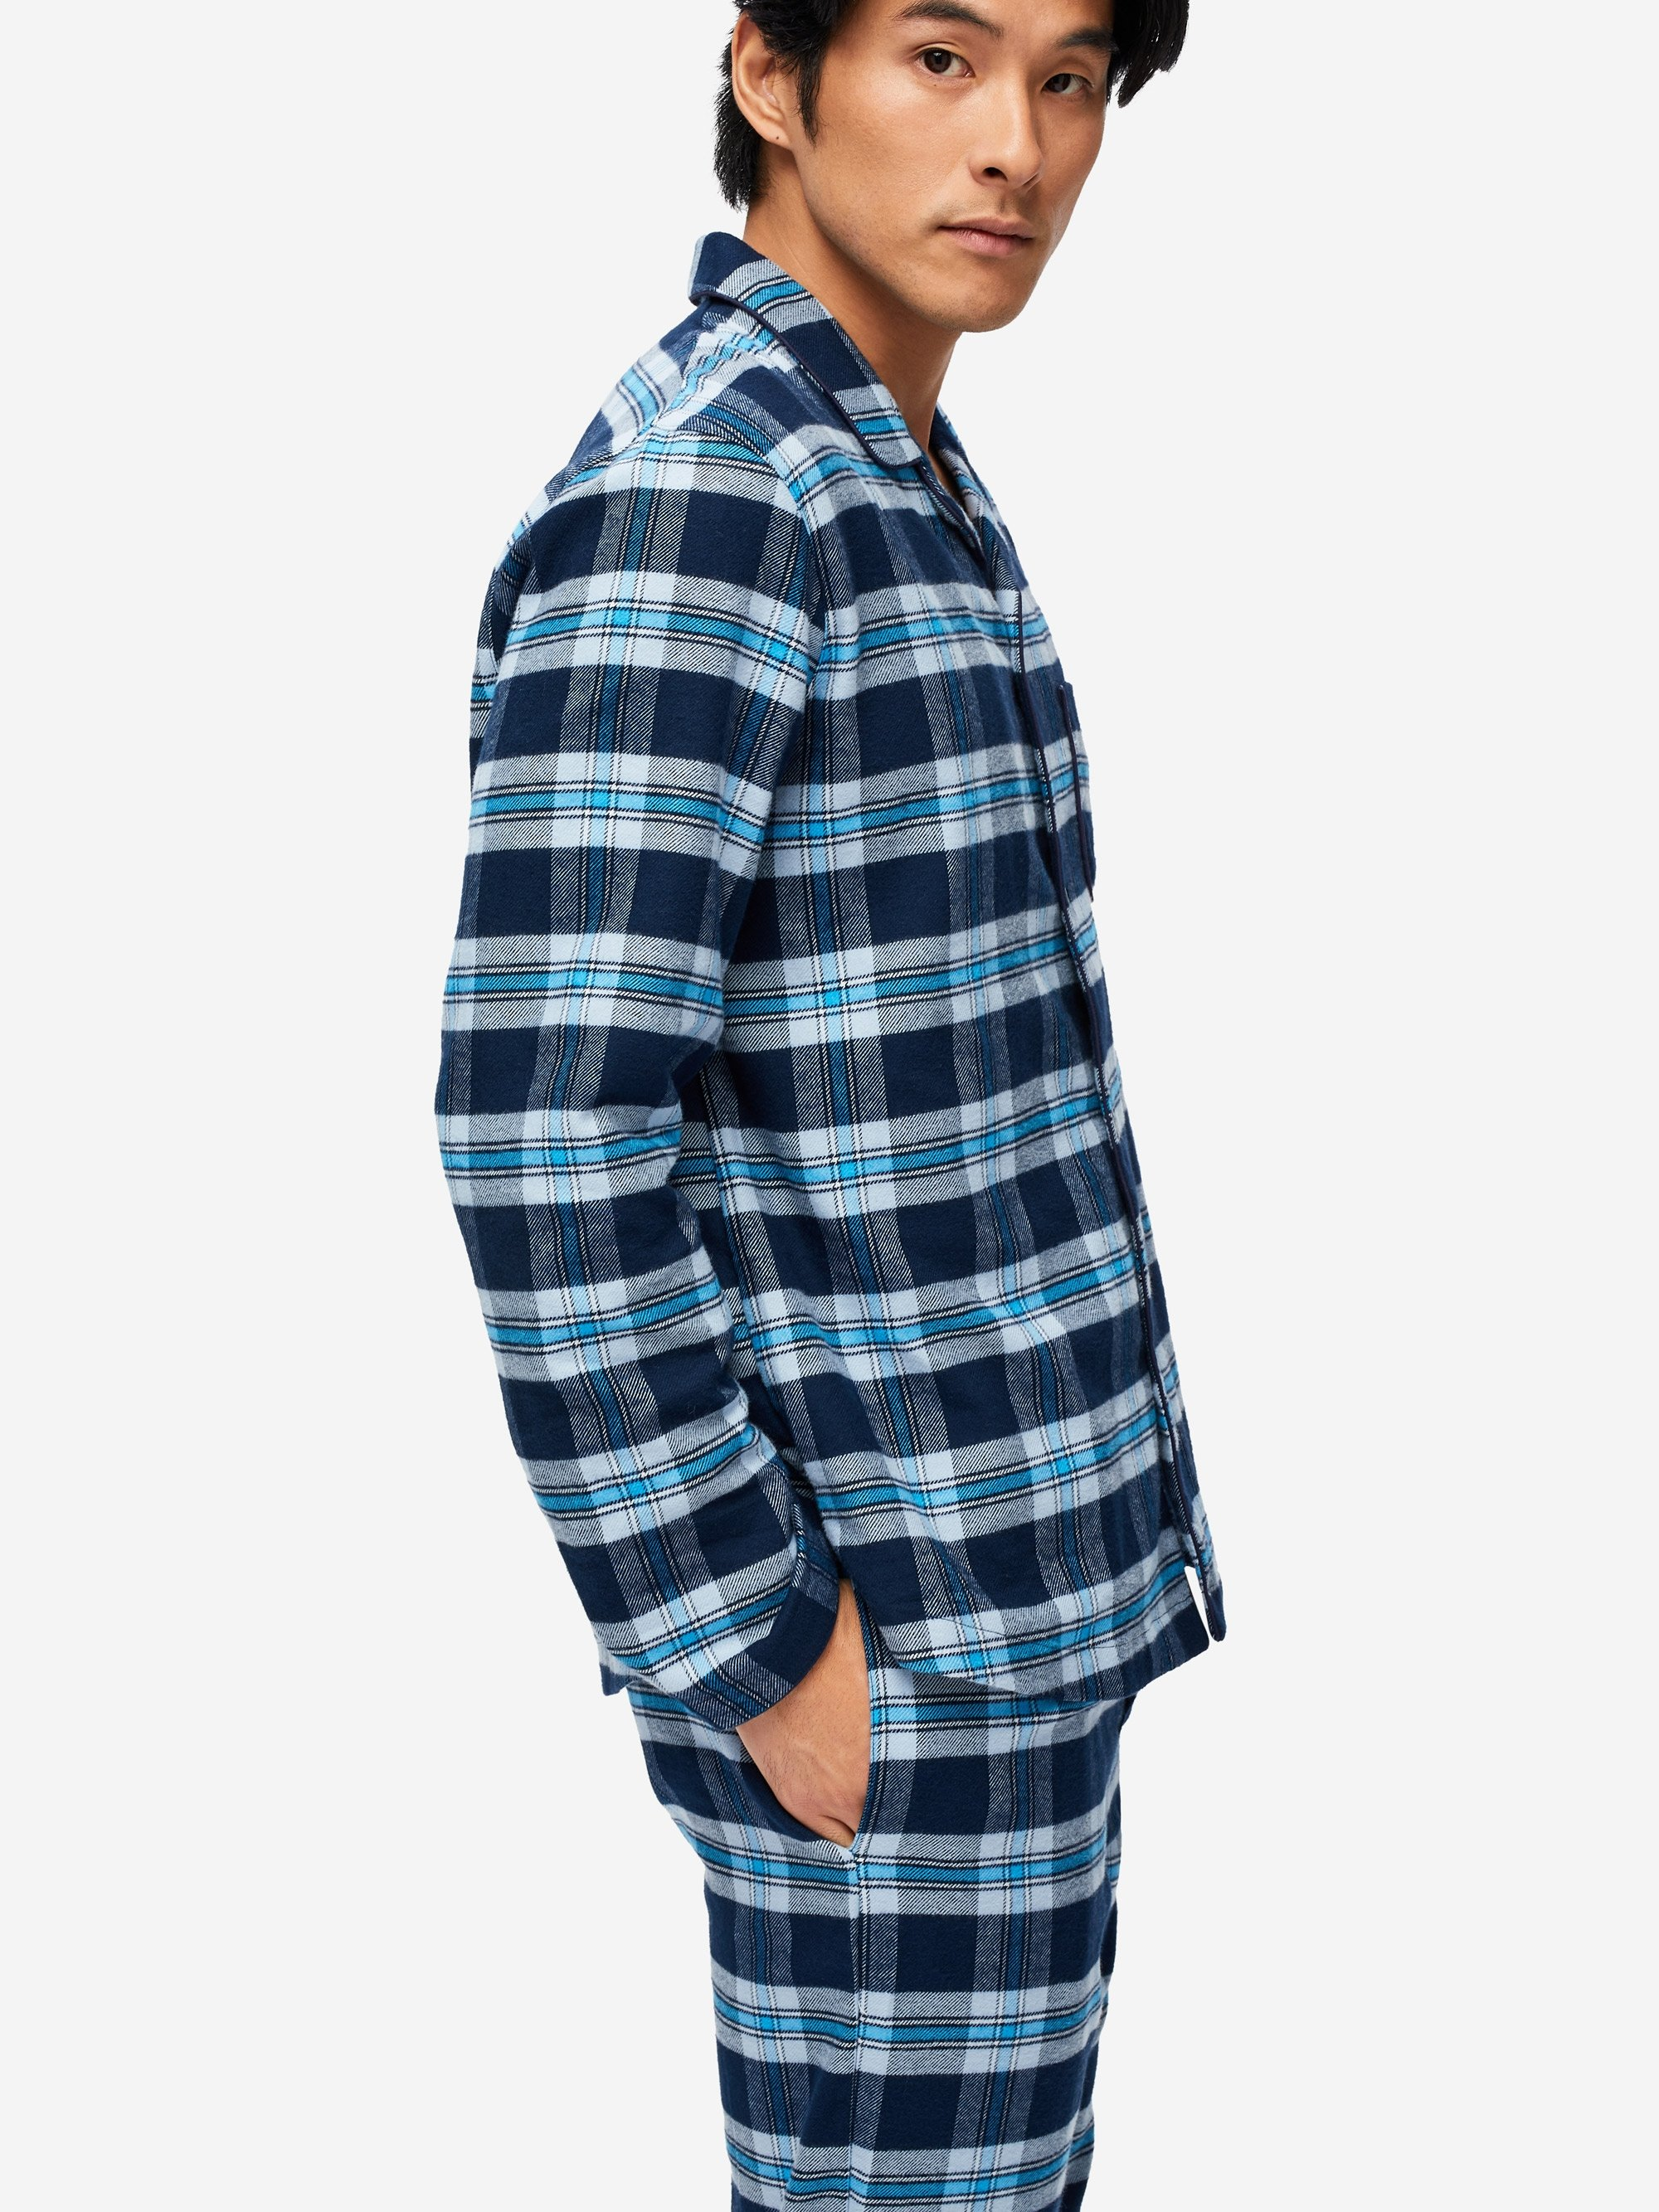 Men's Modern Fit Pyjamas Kelburn 14 Brushed Cotton Check Navy